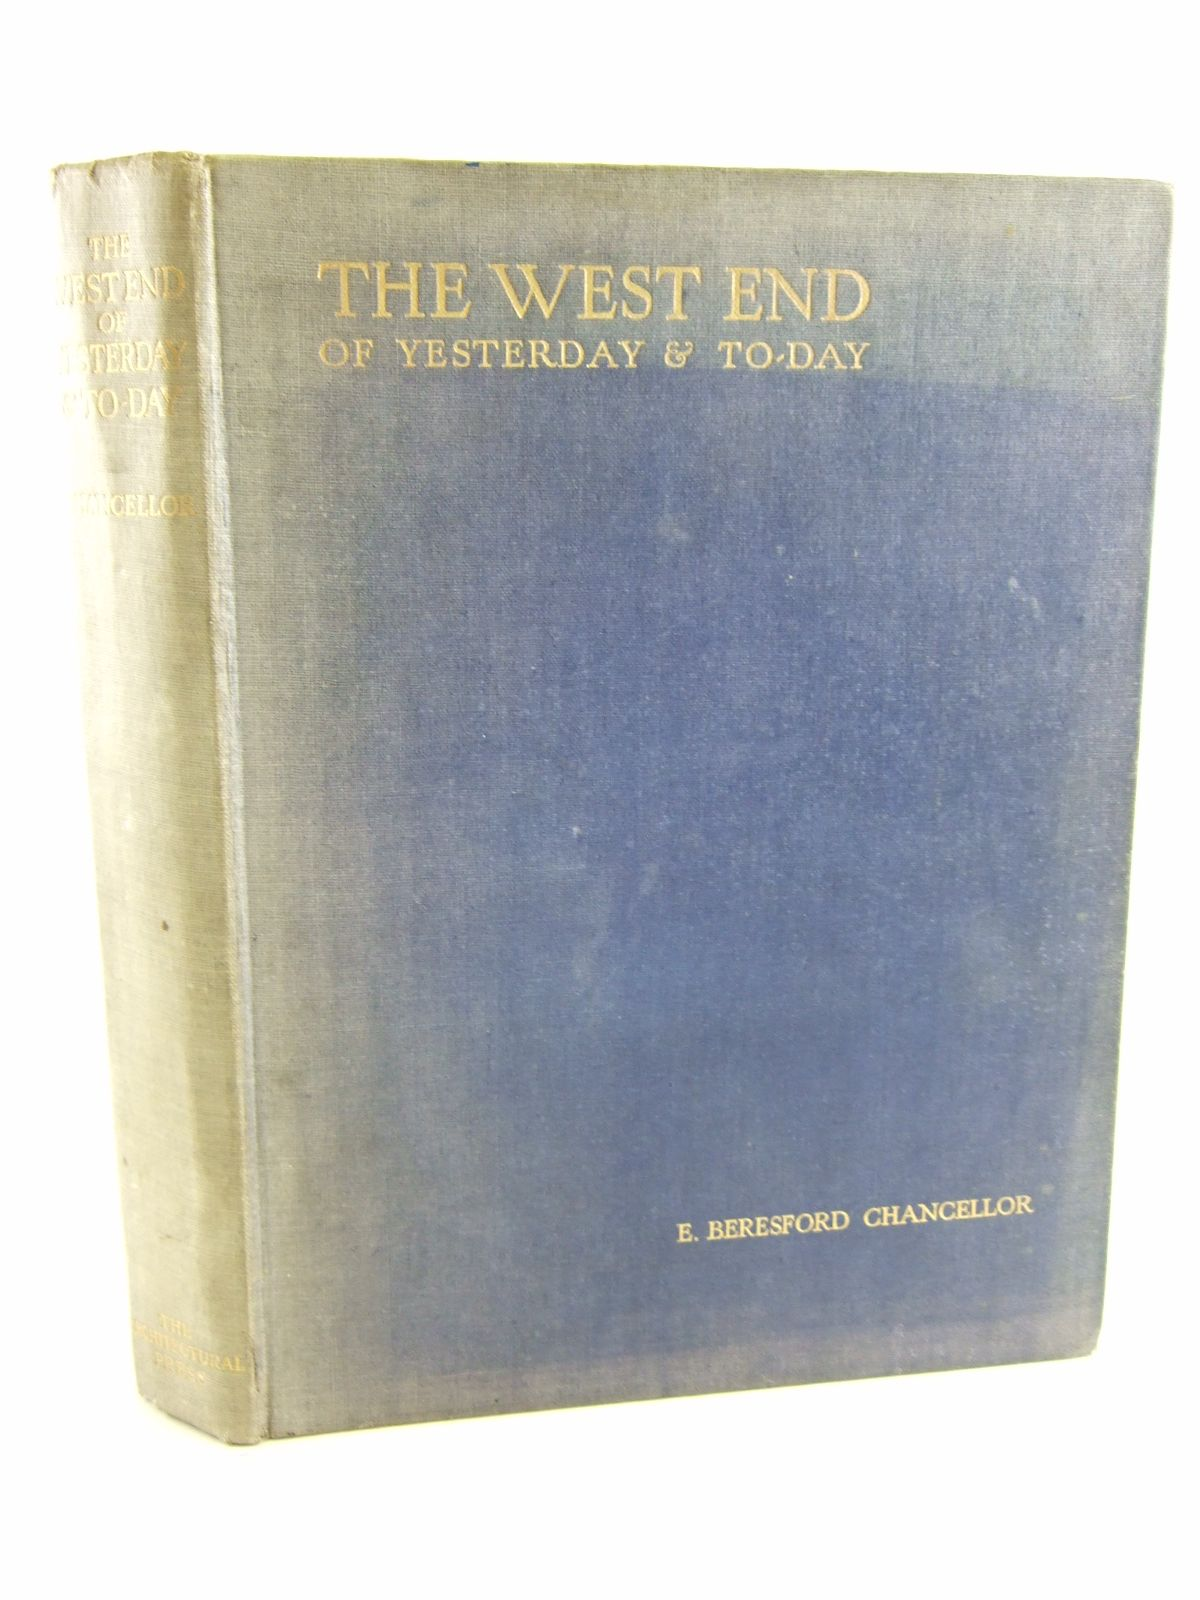 Photo of THE WEST END OF YESTERDAY & TODAY written by Chancellor, E. Beresford published by The Architectural Press (STOCK CODE: 1806645)  for sale by Stella & Rose's Books